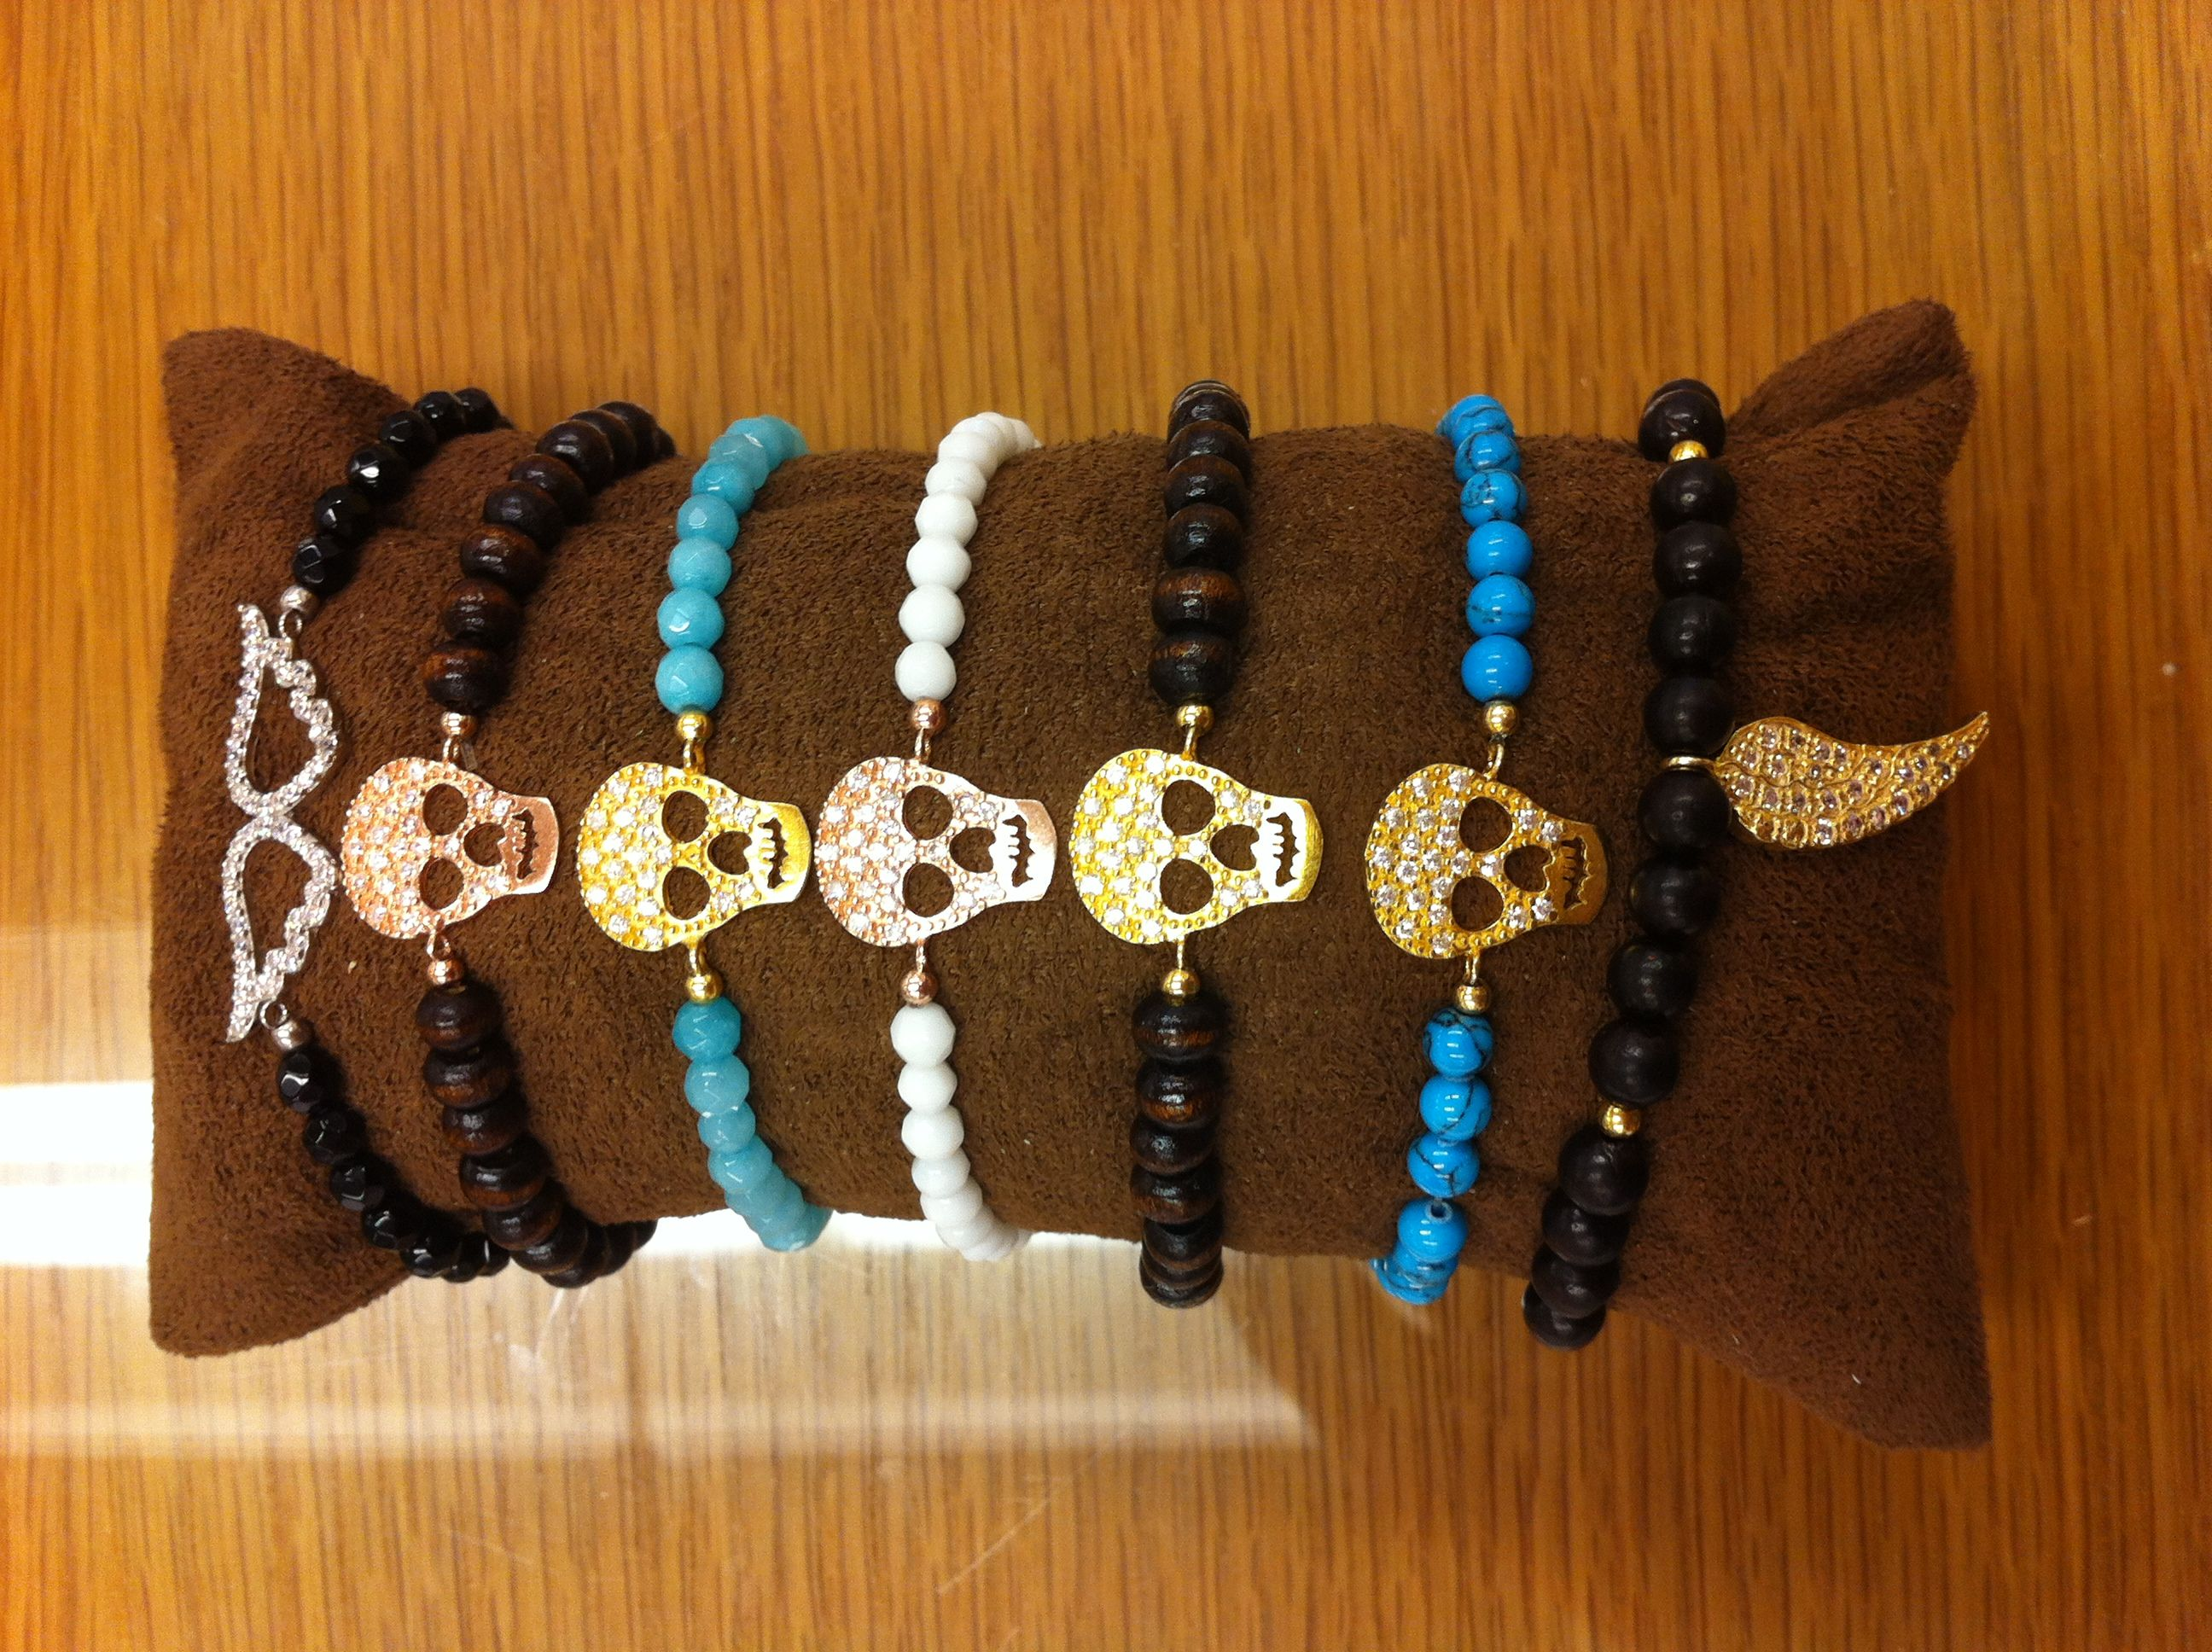 ASSORTED STRETCHY BRACELETS $58- EACH CALL SPLASH TO ORDER 314-721-6442